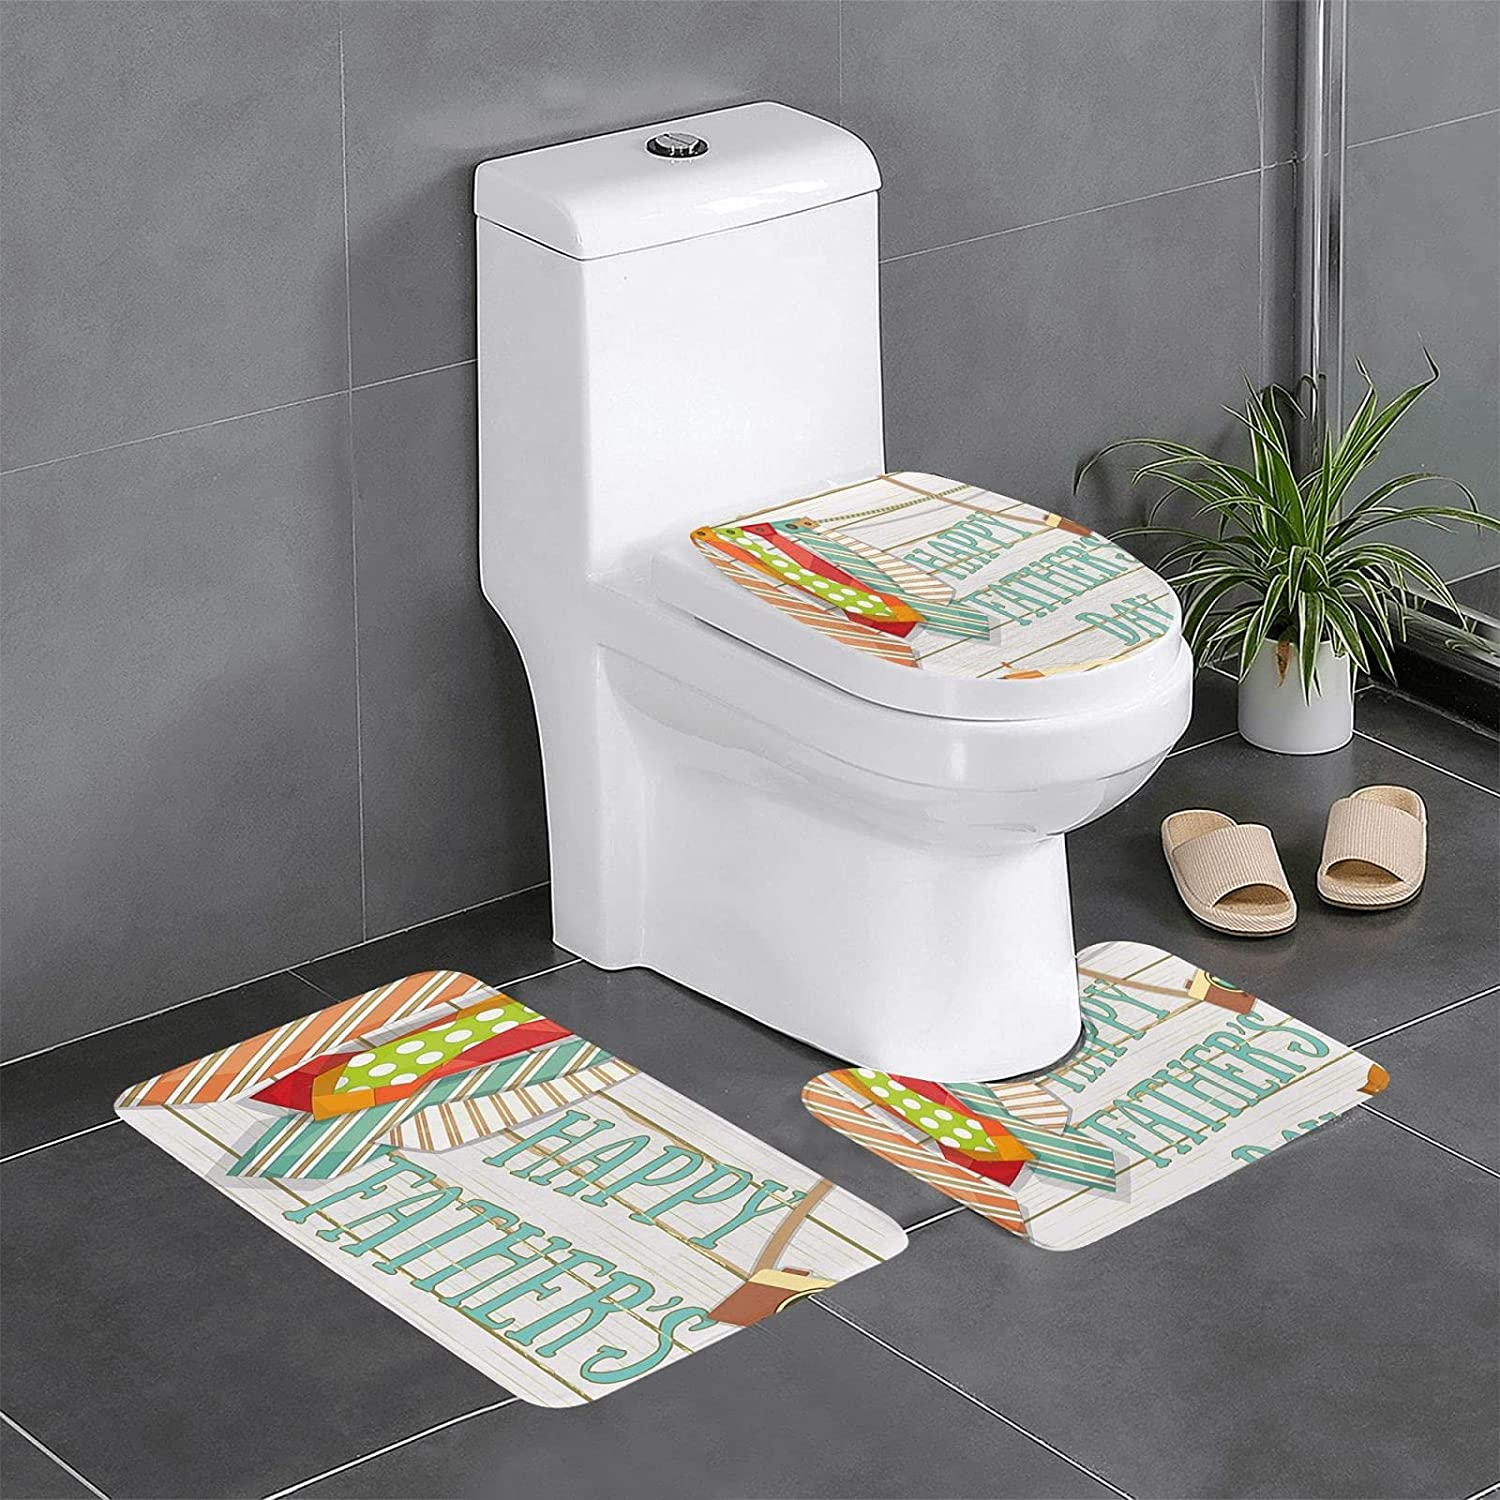 Bathroom Rugs Sets 3 Max 55% OFF Piece Outlet SALE Ties Shower Rod Fishing Camera Shoes